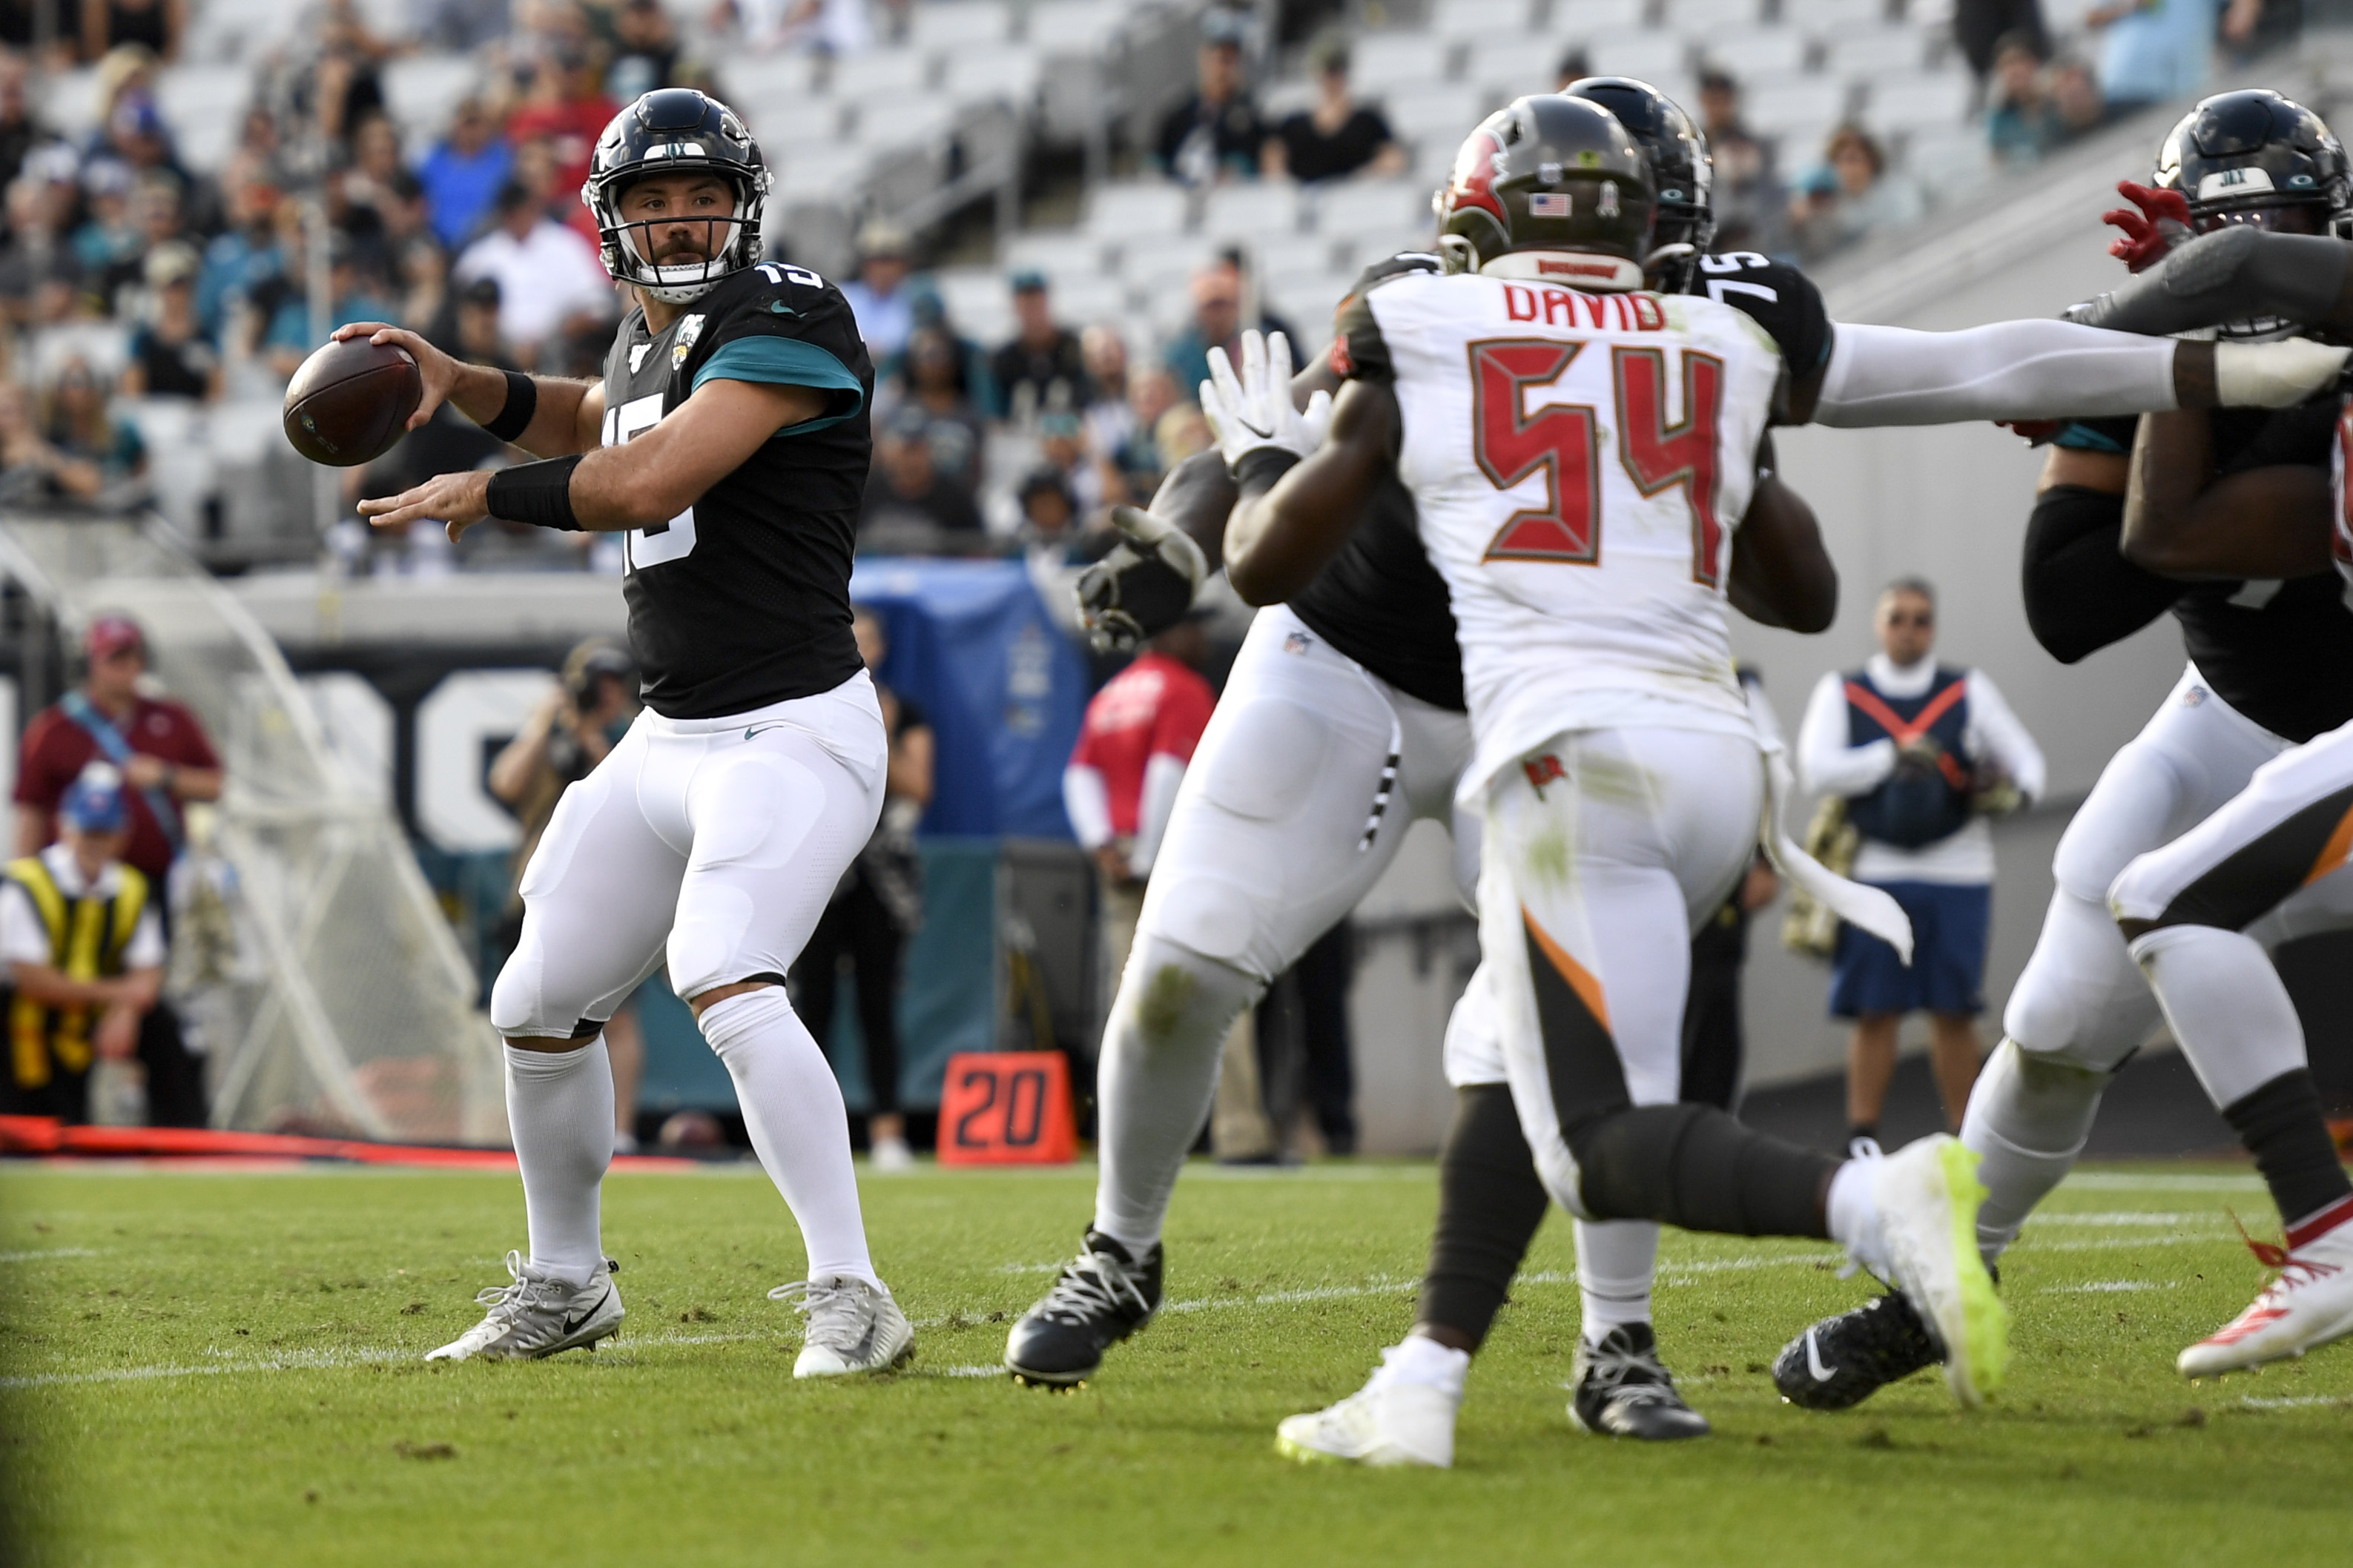 Jaguars Drop Fourth Straight in 28-11 Home Loss to Buccaneers